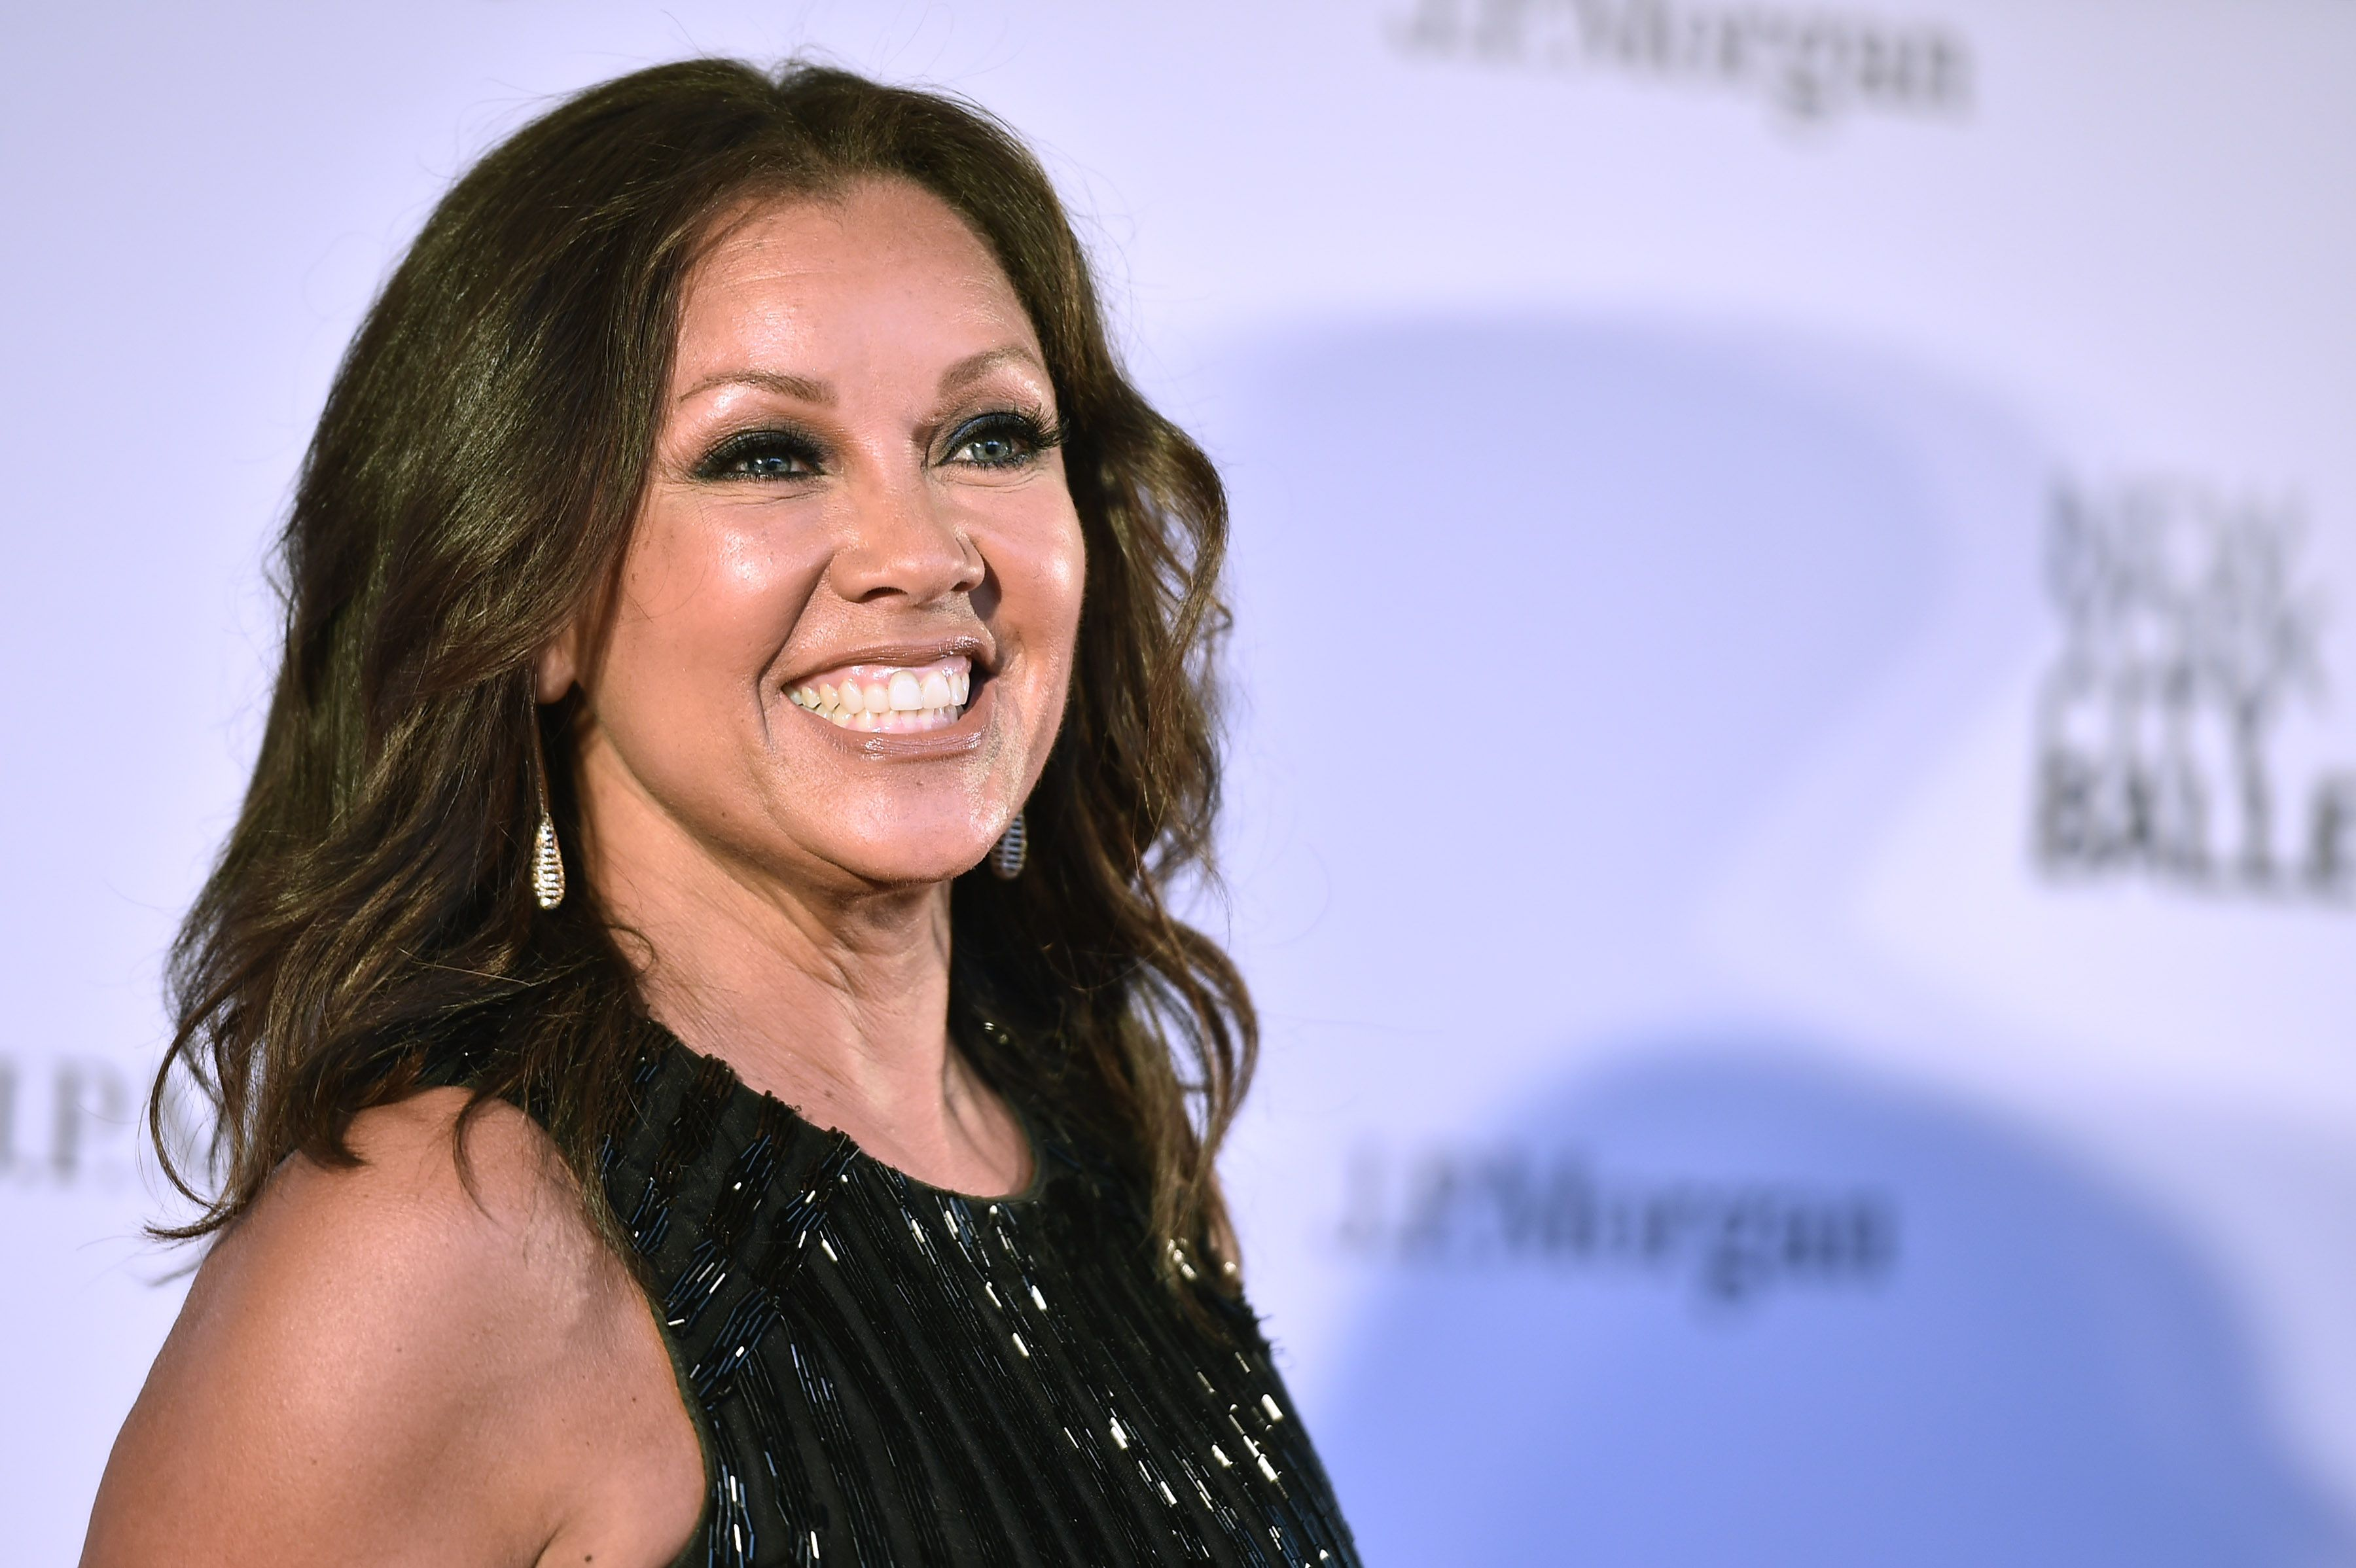 Vanessa Williams at the New York City Ballet 2018 Spring Gala on May 3, 2018 in New York. | Photo: Getty Images